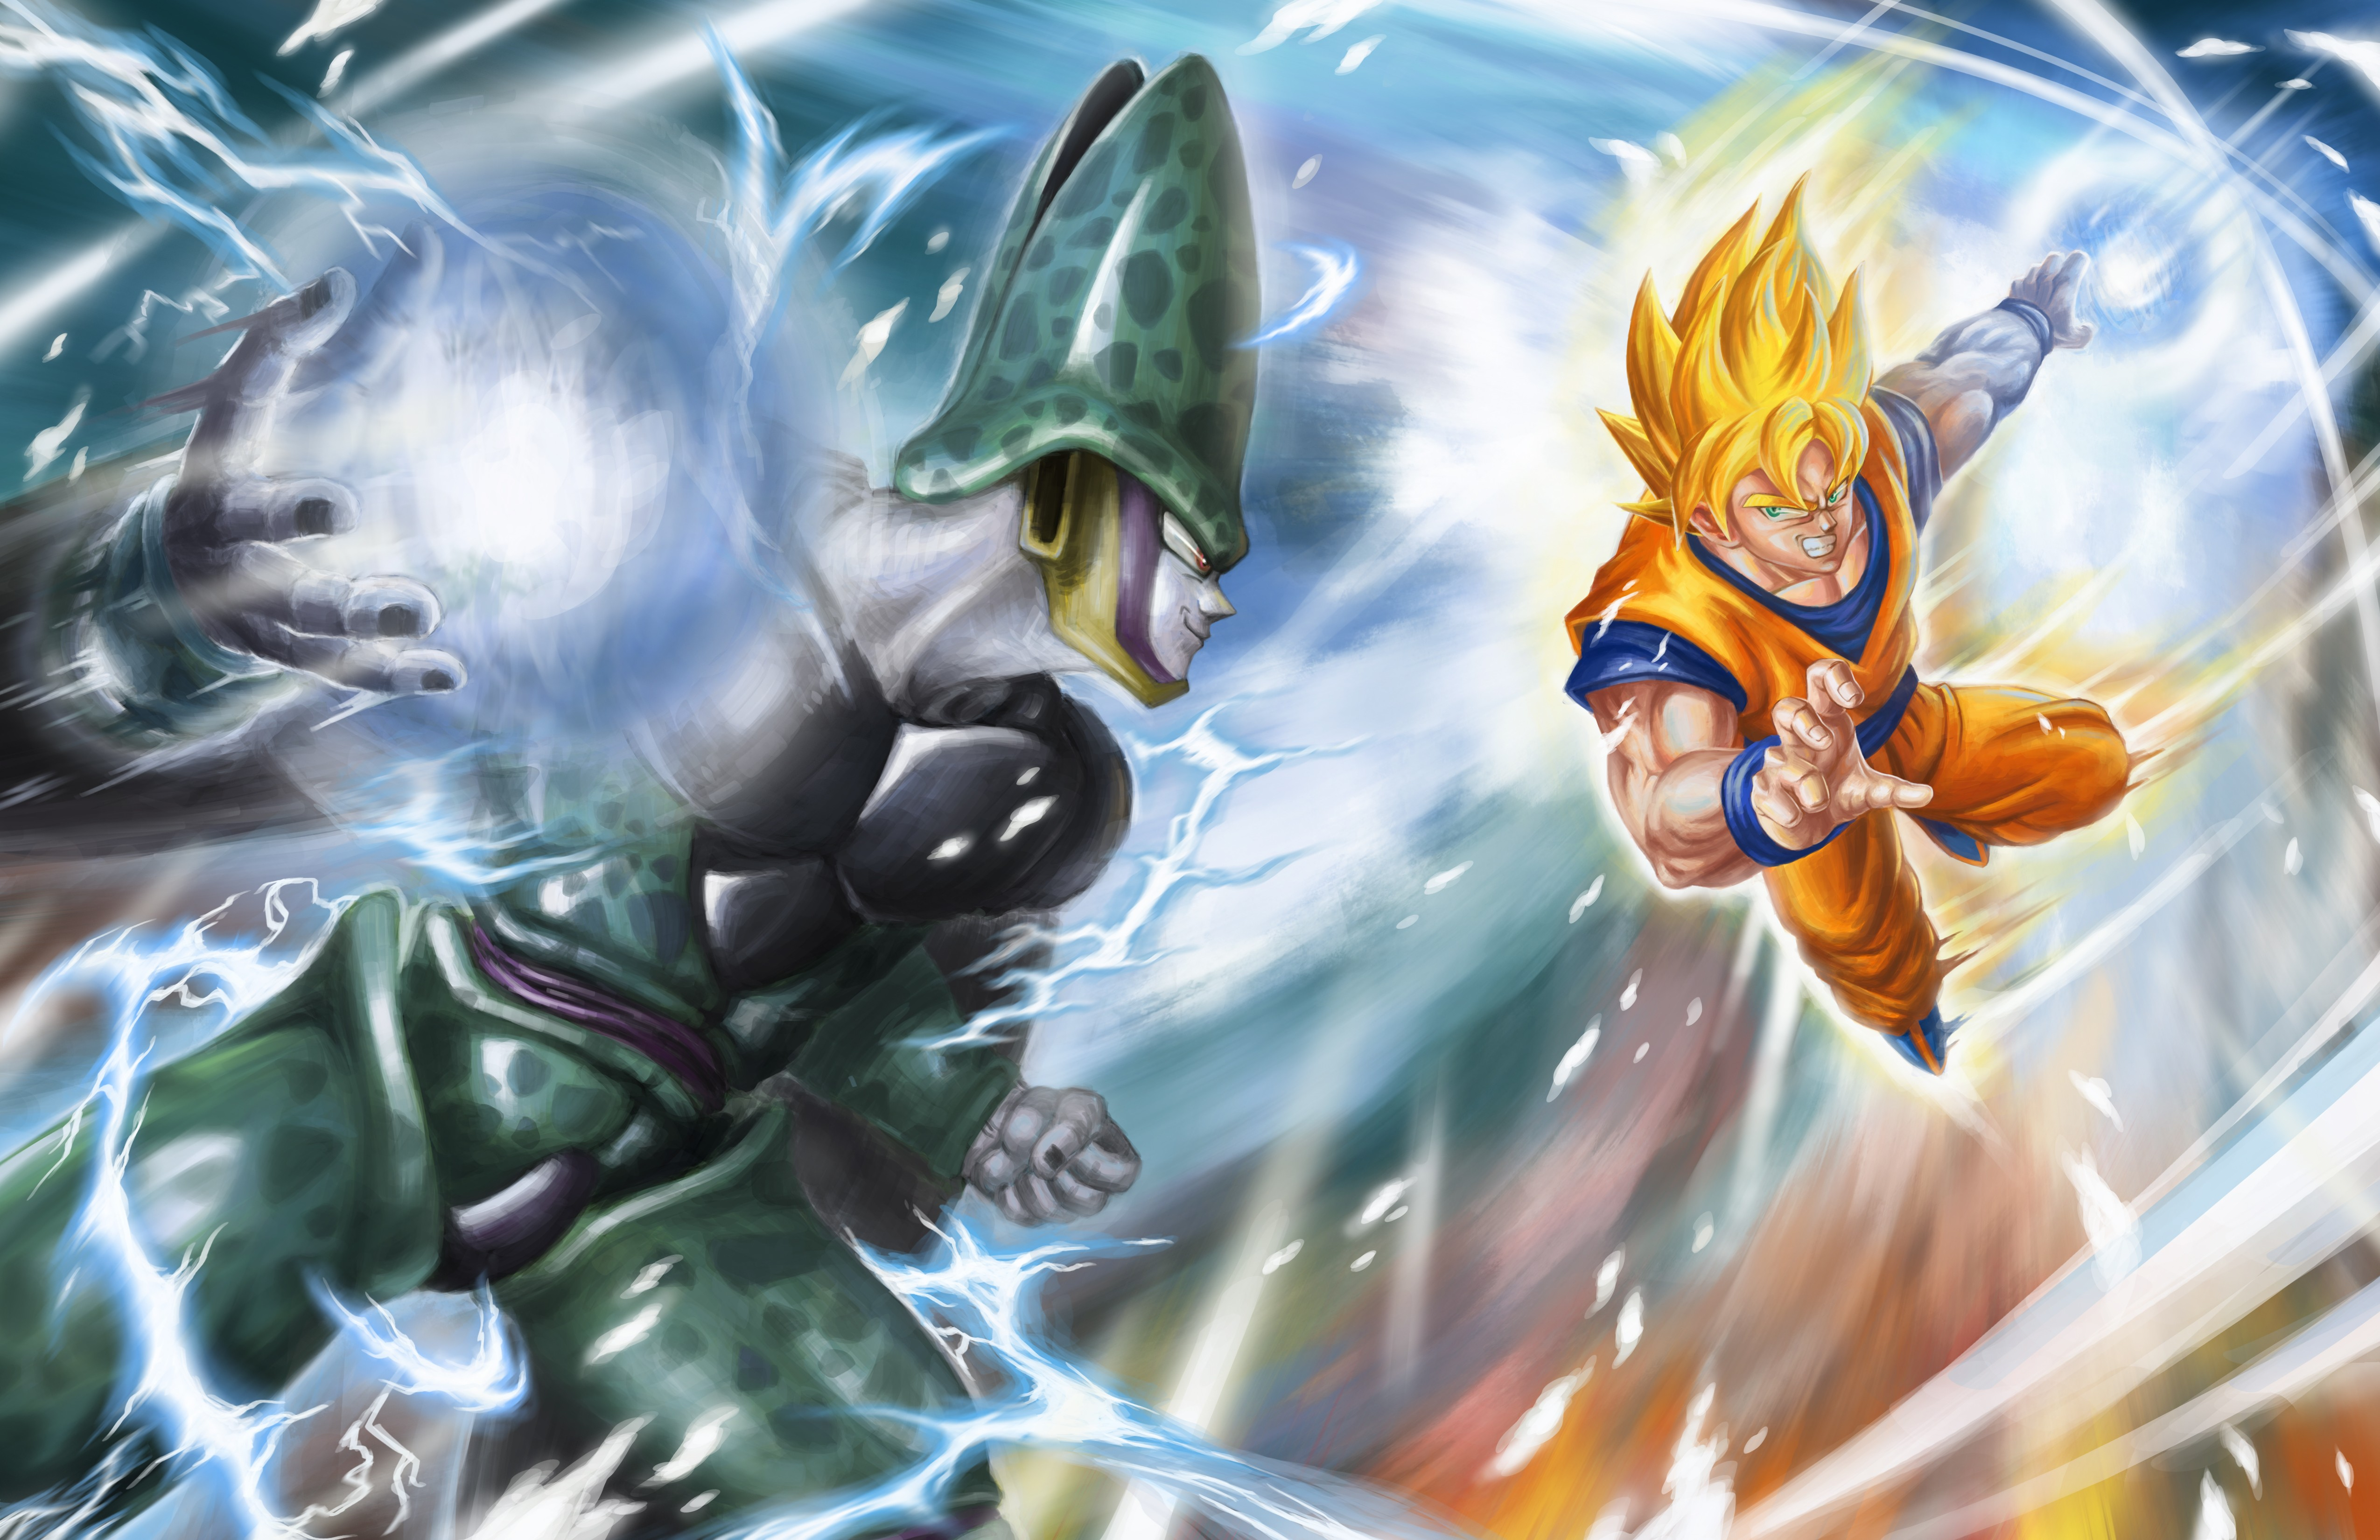 Cell goku dragon ball z dragon ball dragon ball gt - Dragon ball super background music mp3 download ...